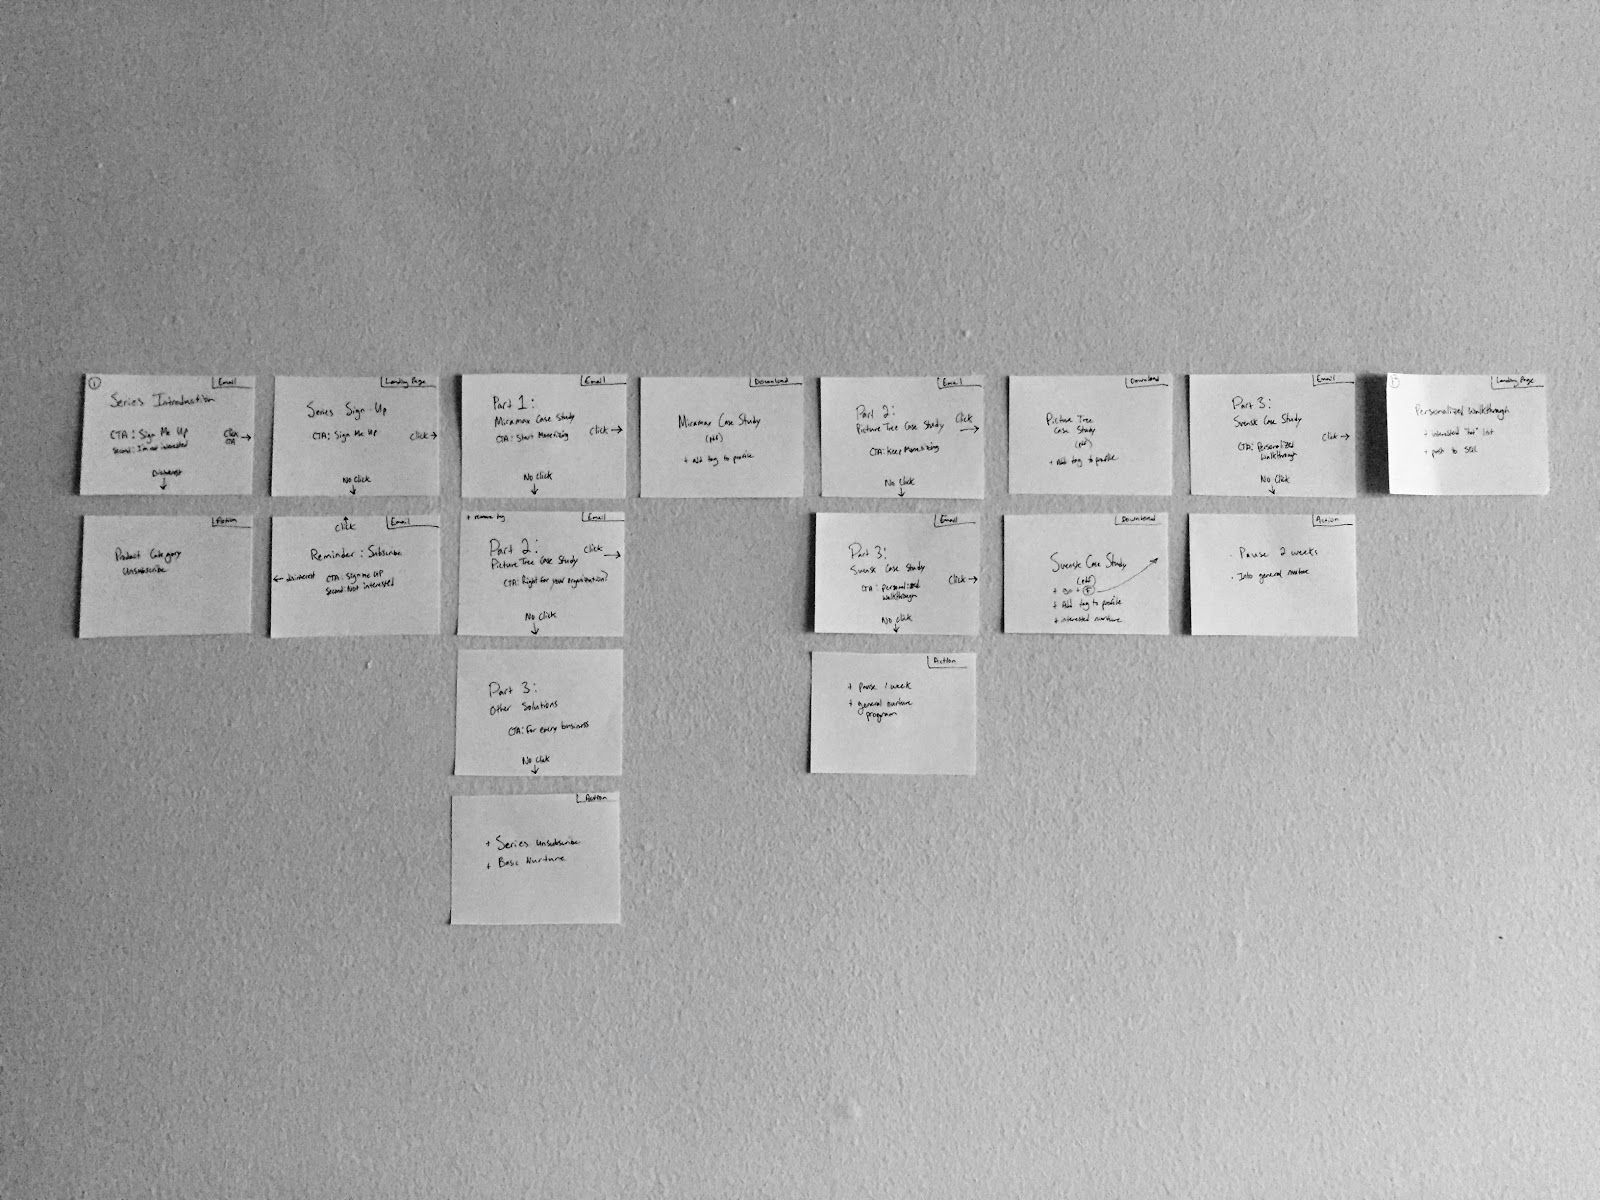 Photo of email journey for NAB participants on index cards on a wall